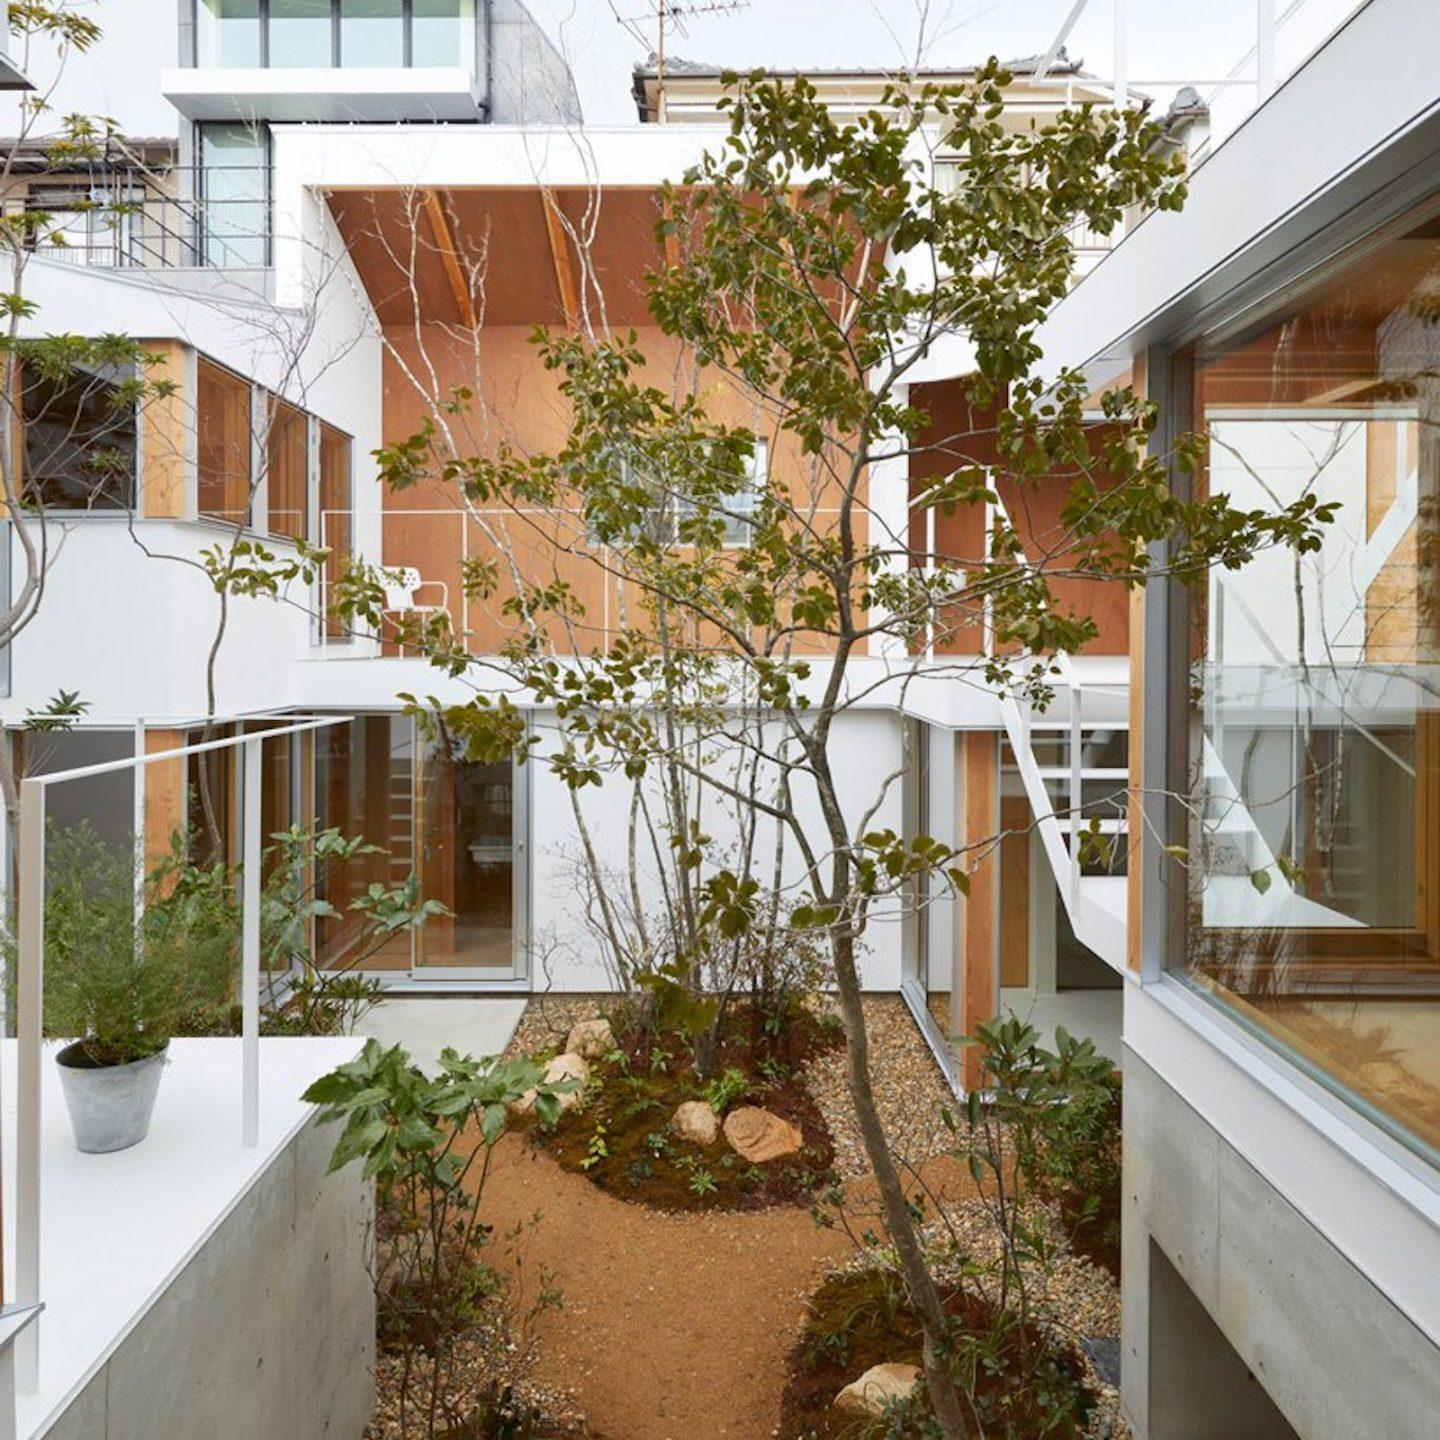 IGNANT-Architecture-Hata-Tomohiro-Loop-Terrace-house-007